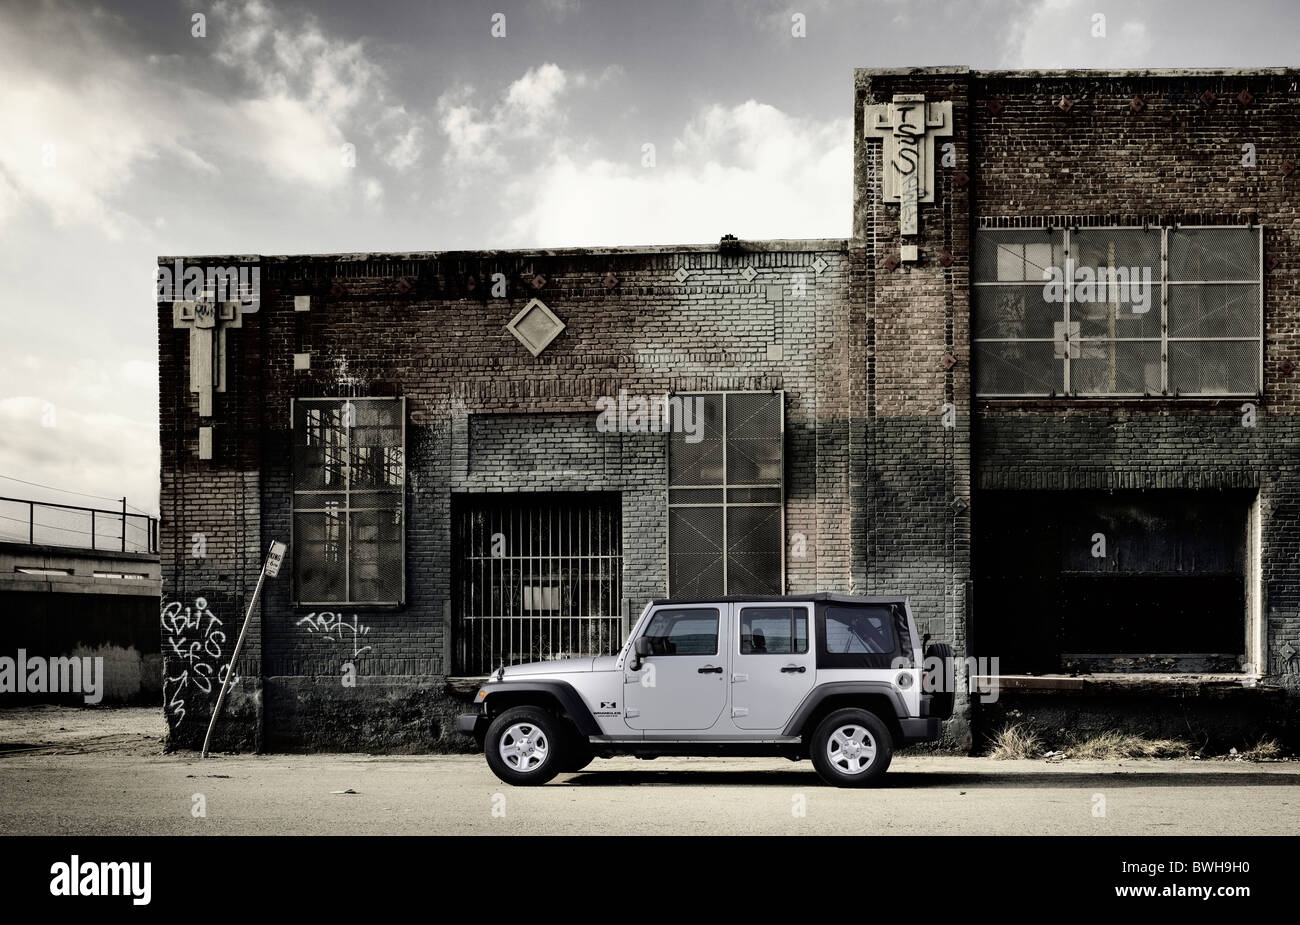 Transportation Jeep profile static beauty set in urban environment during daylight - Stock Image